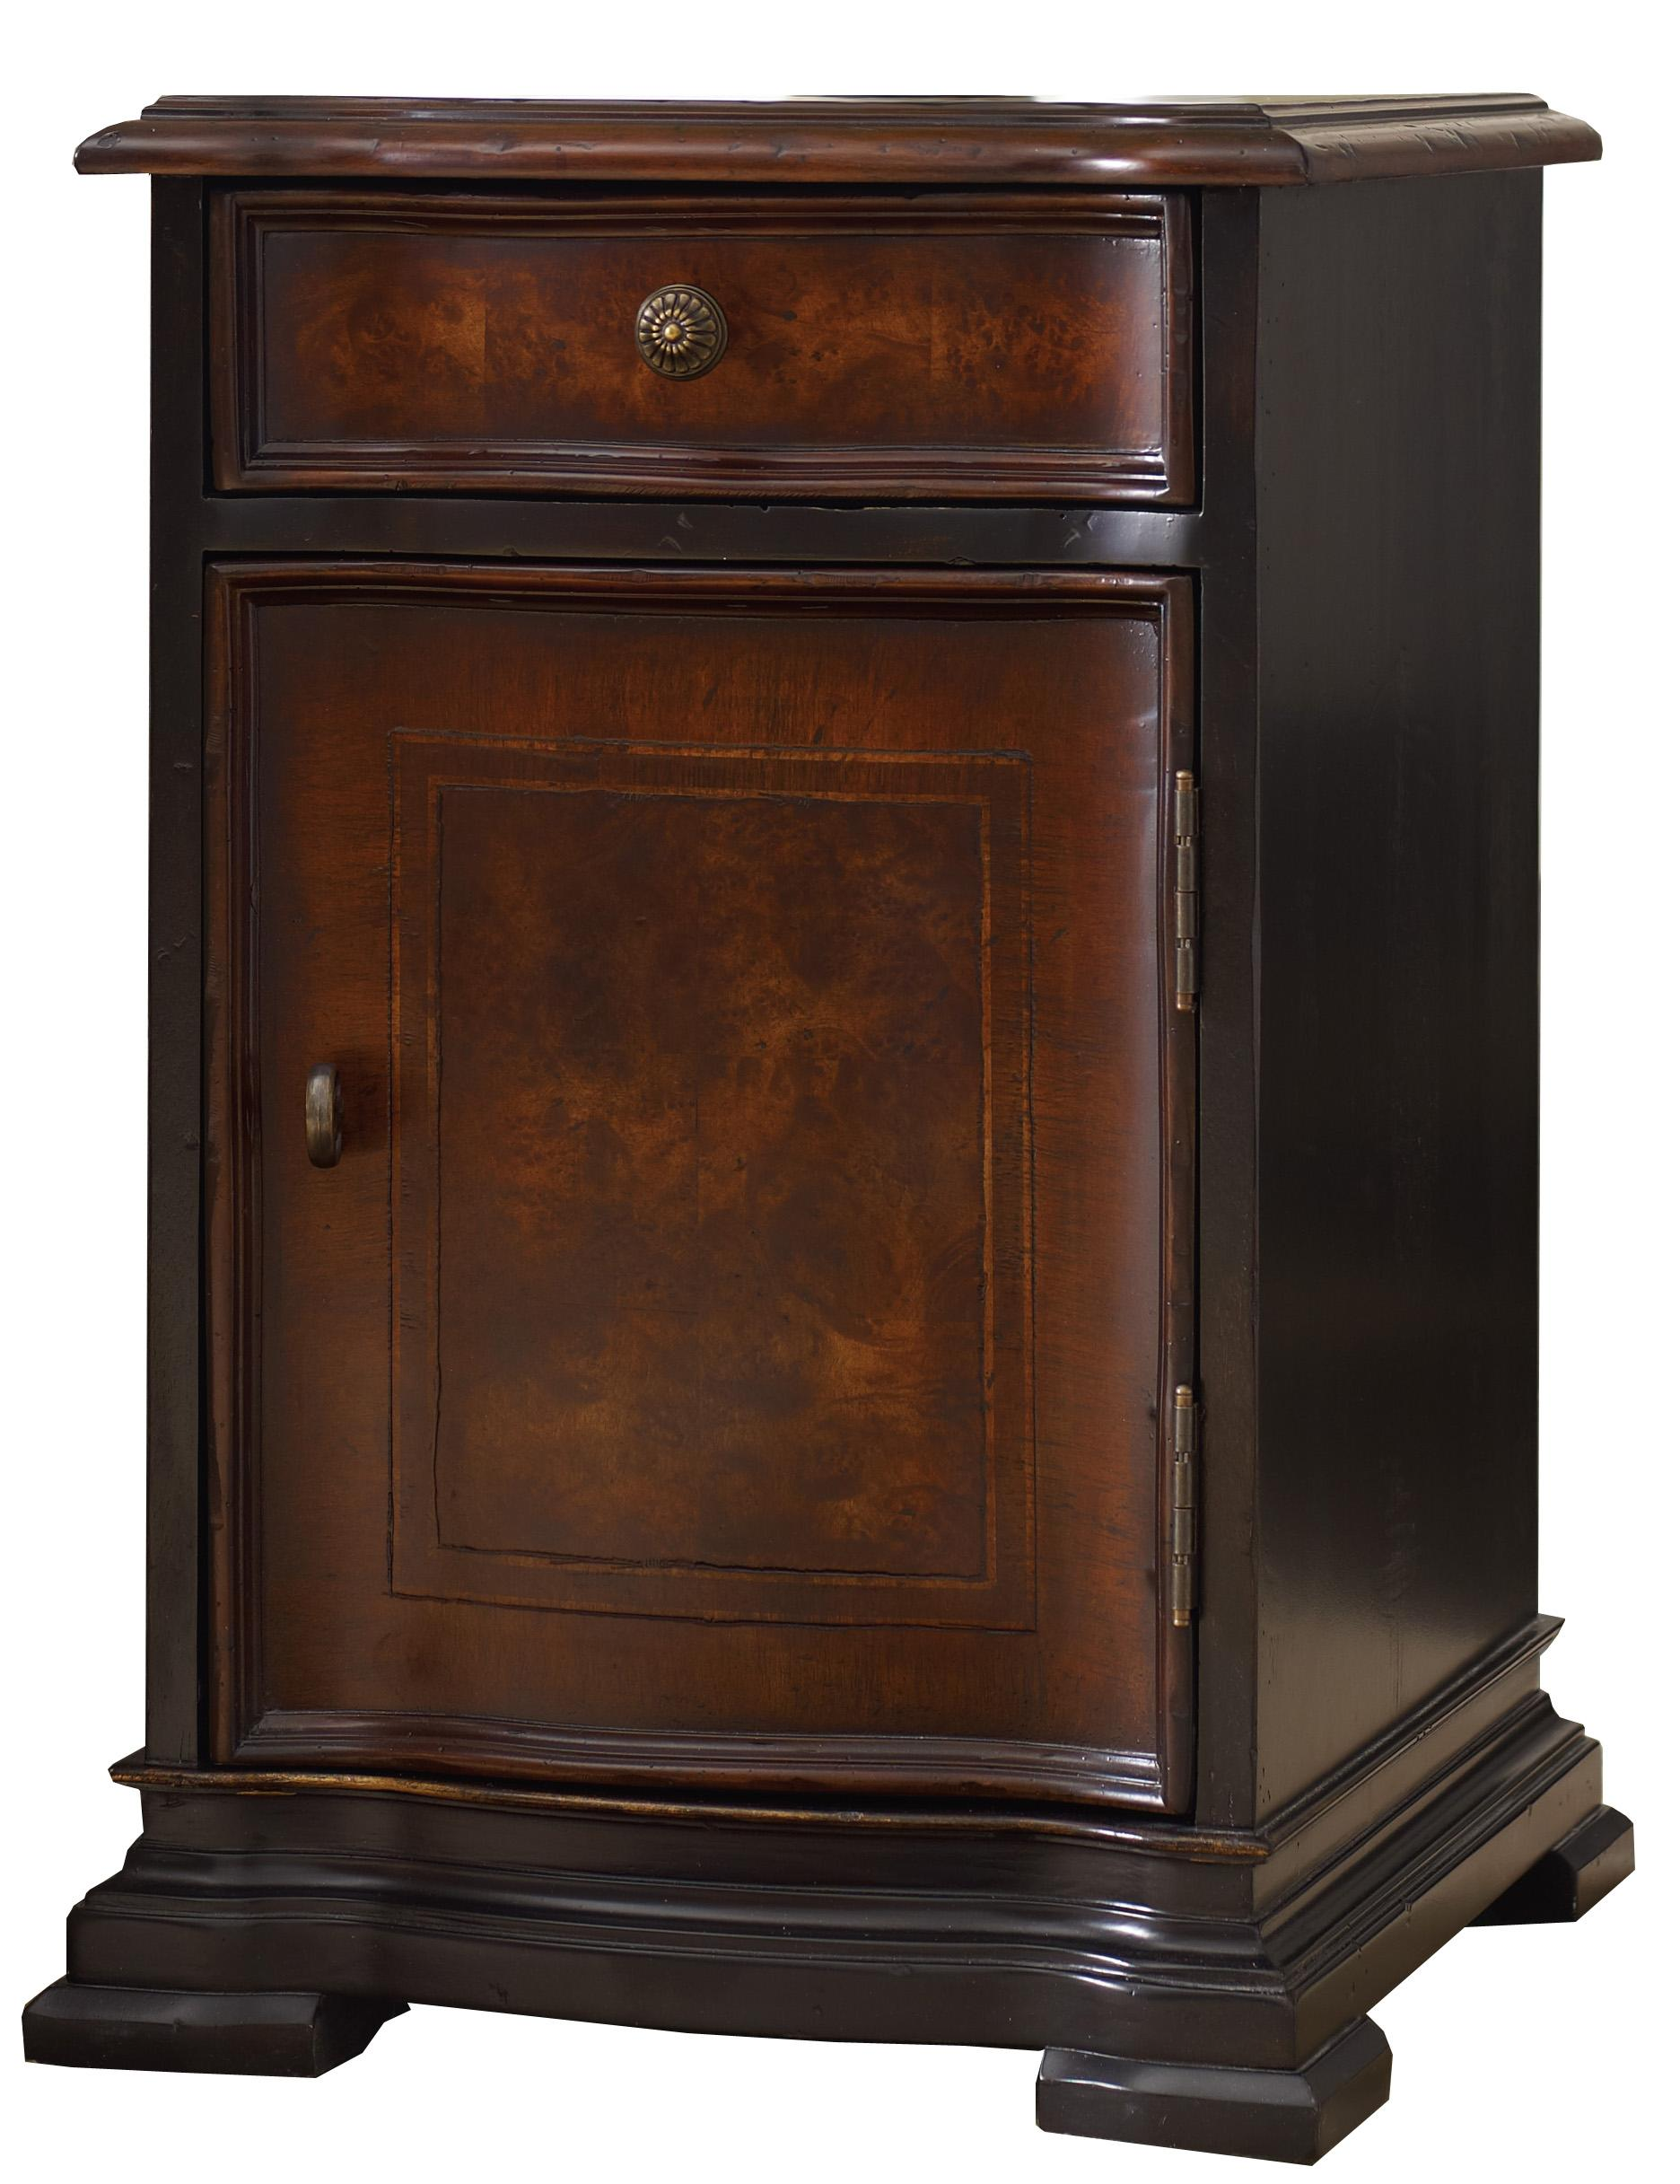 Hooker Furniture Grandover Chairside Chest - Item Number: 5029-50004